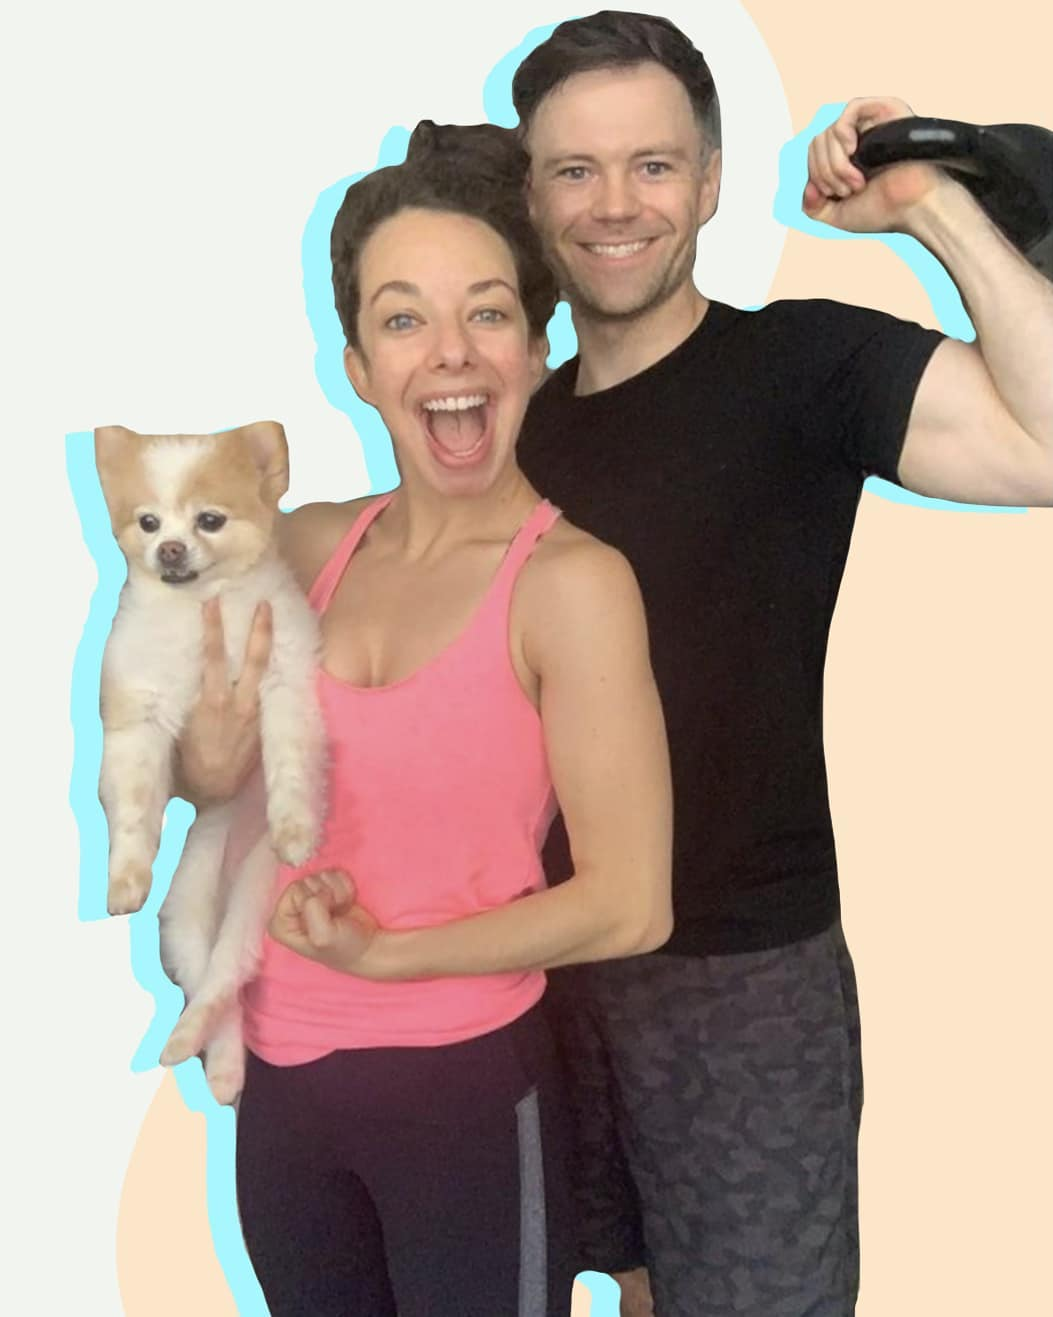 Live from NY but coming soon to a Zoom studio near you! So excited to bring MauneyFIT into the GoTrayne family this June. Stay tuned for more news to come!